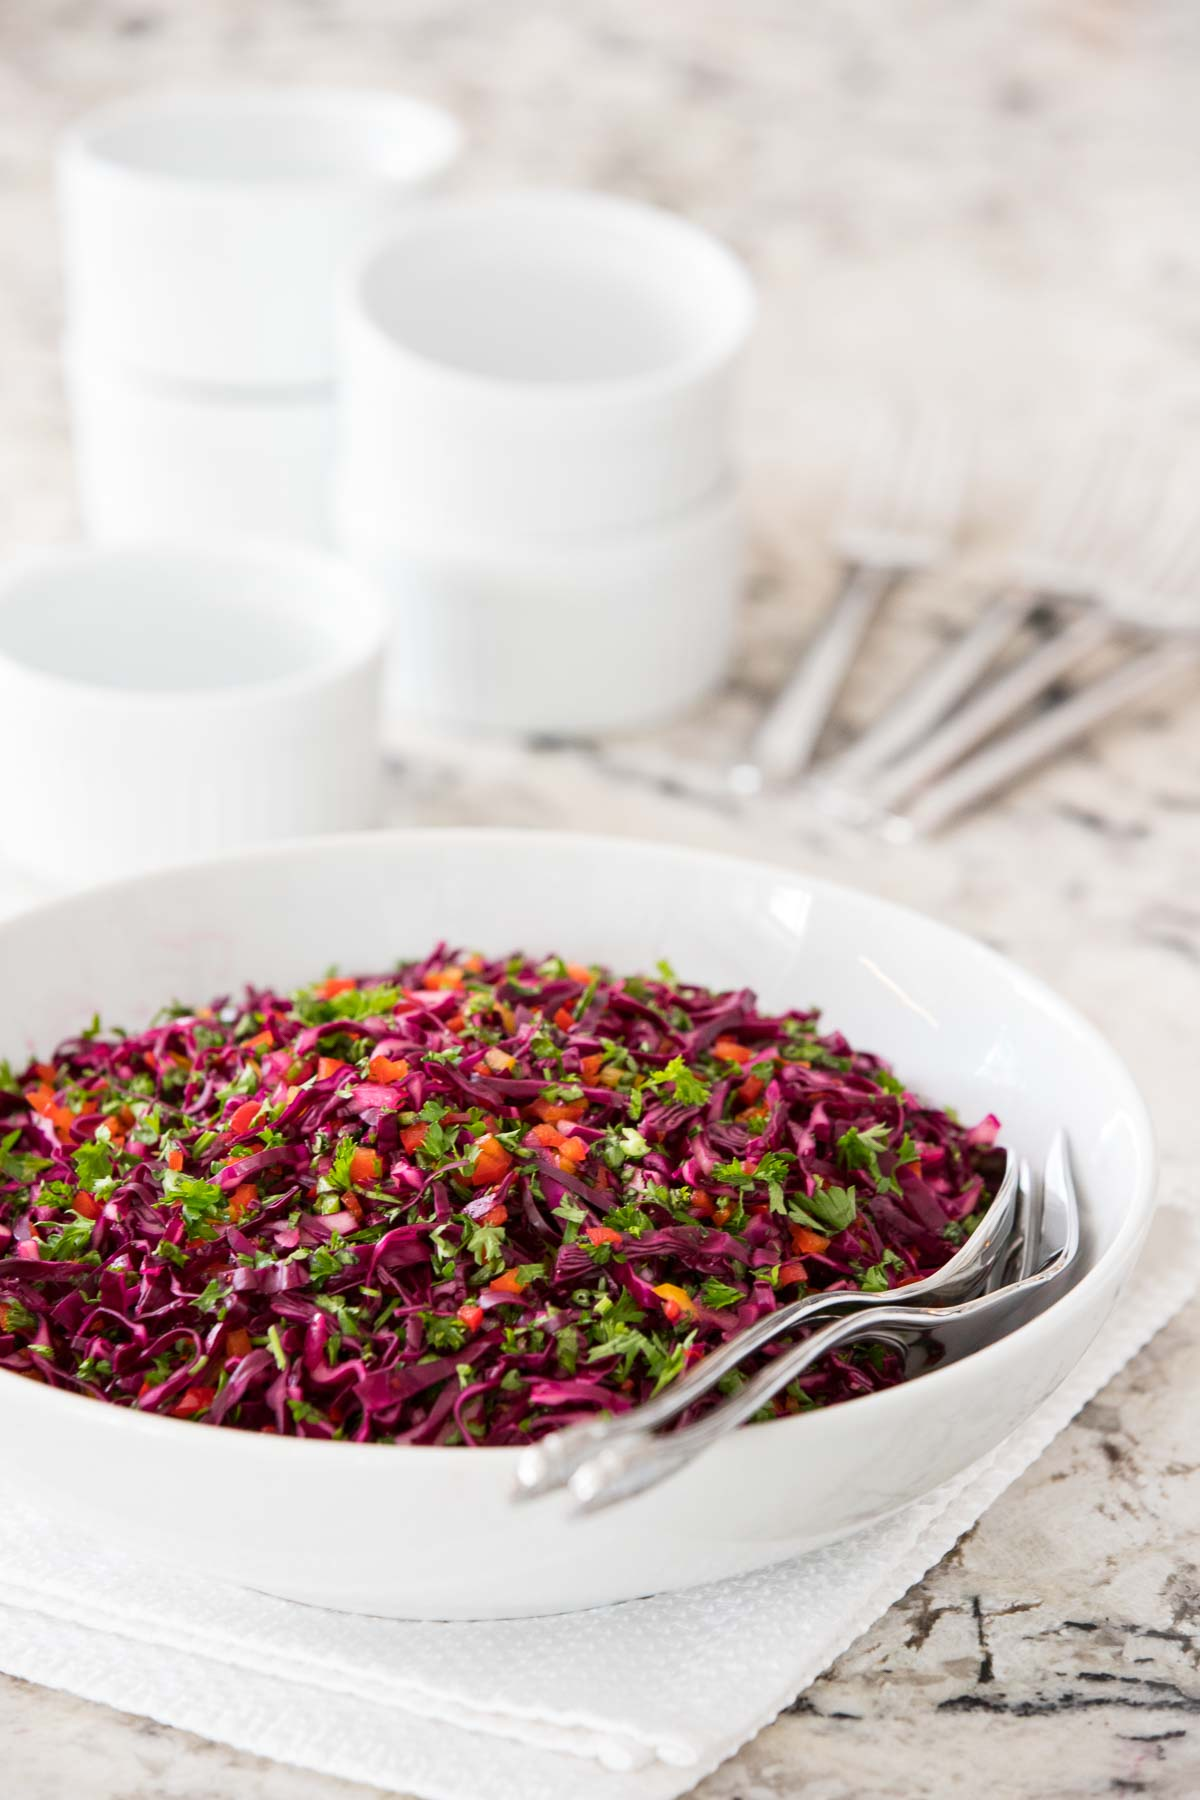 Photo of a serving bowl of Asian Red Cabbage Slaw on a white and black granite countertop.